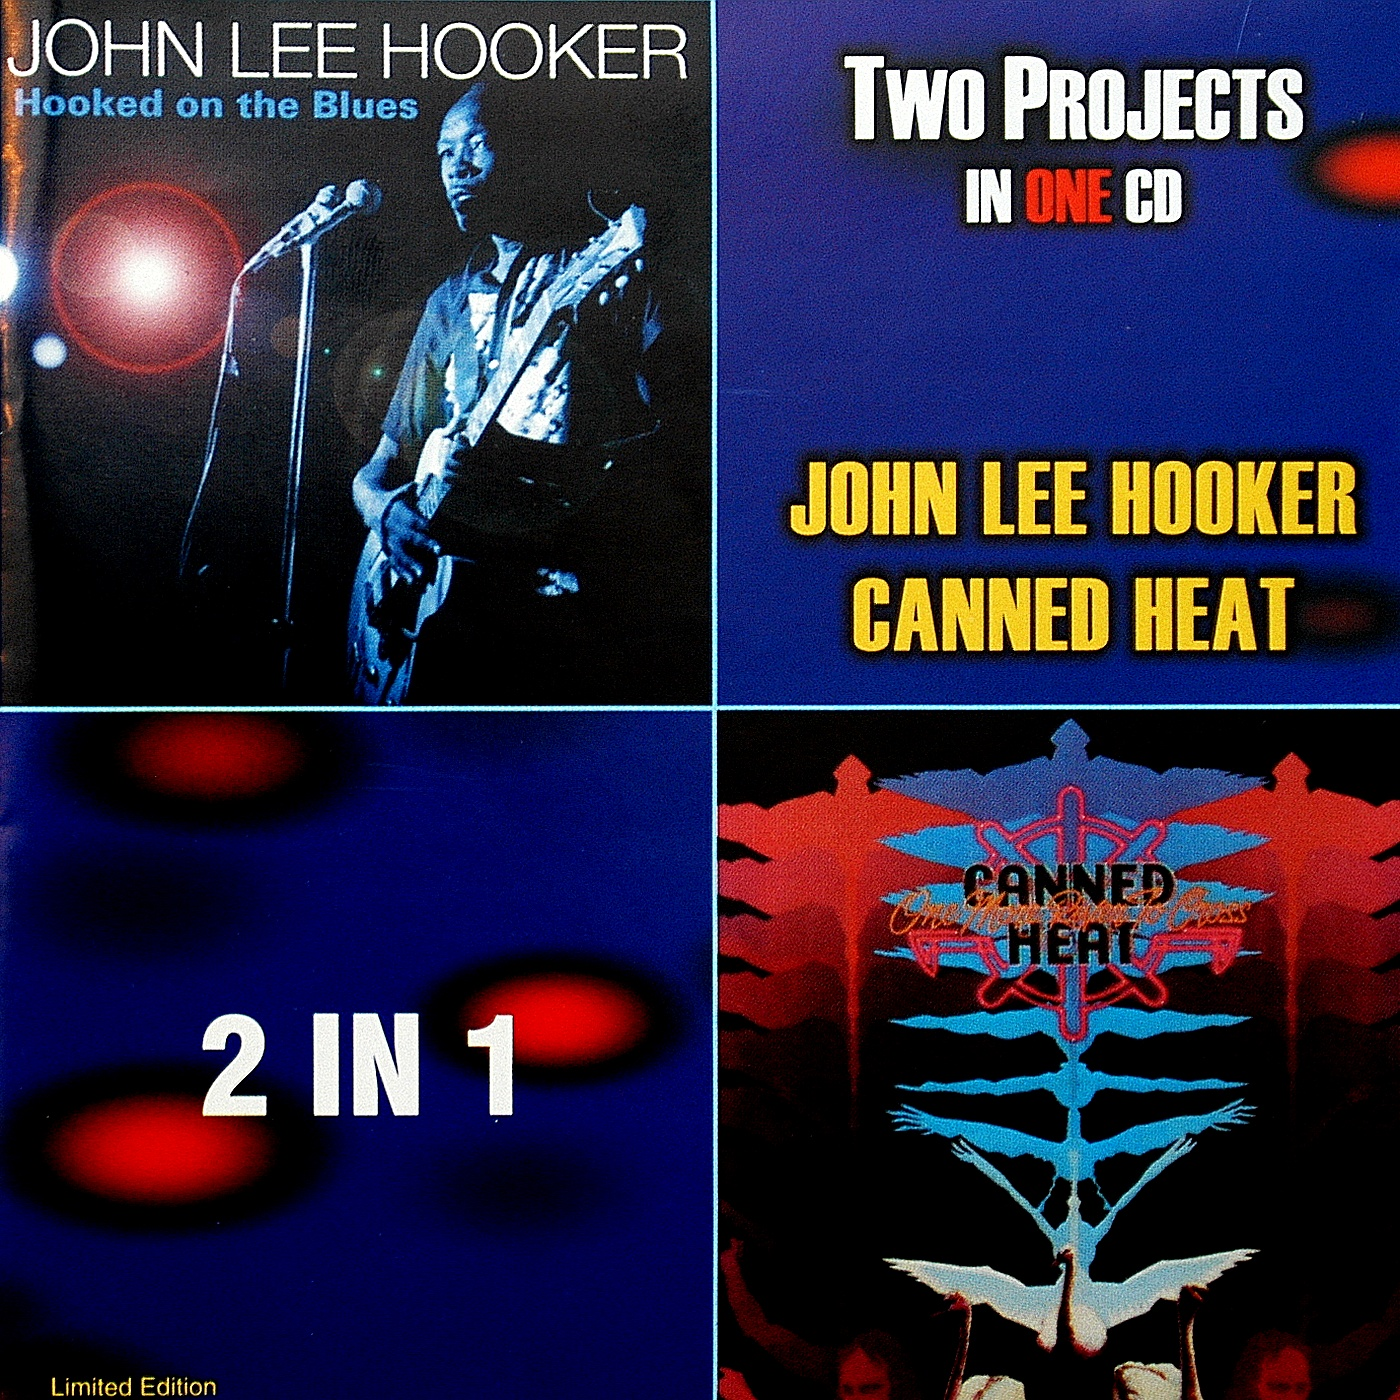 Canned Heat & John Lee Hooker - Hooked On The Blues / One More River To Cross (n/a)